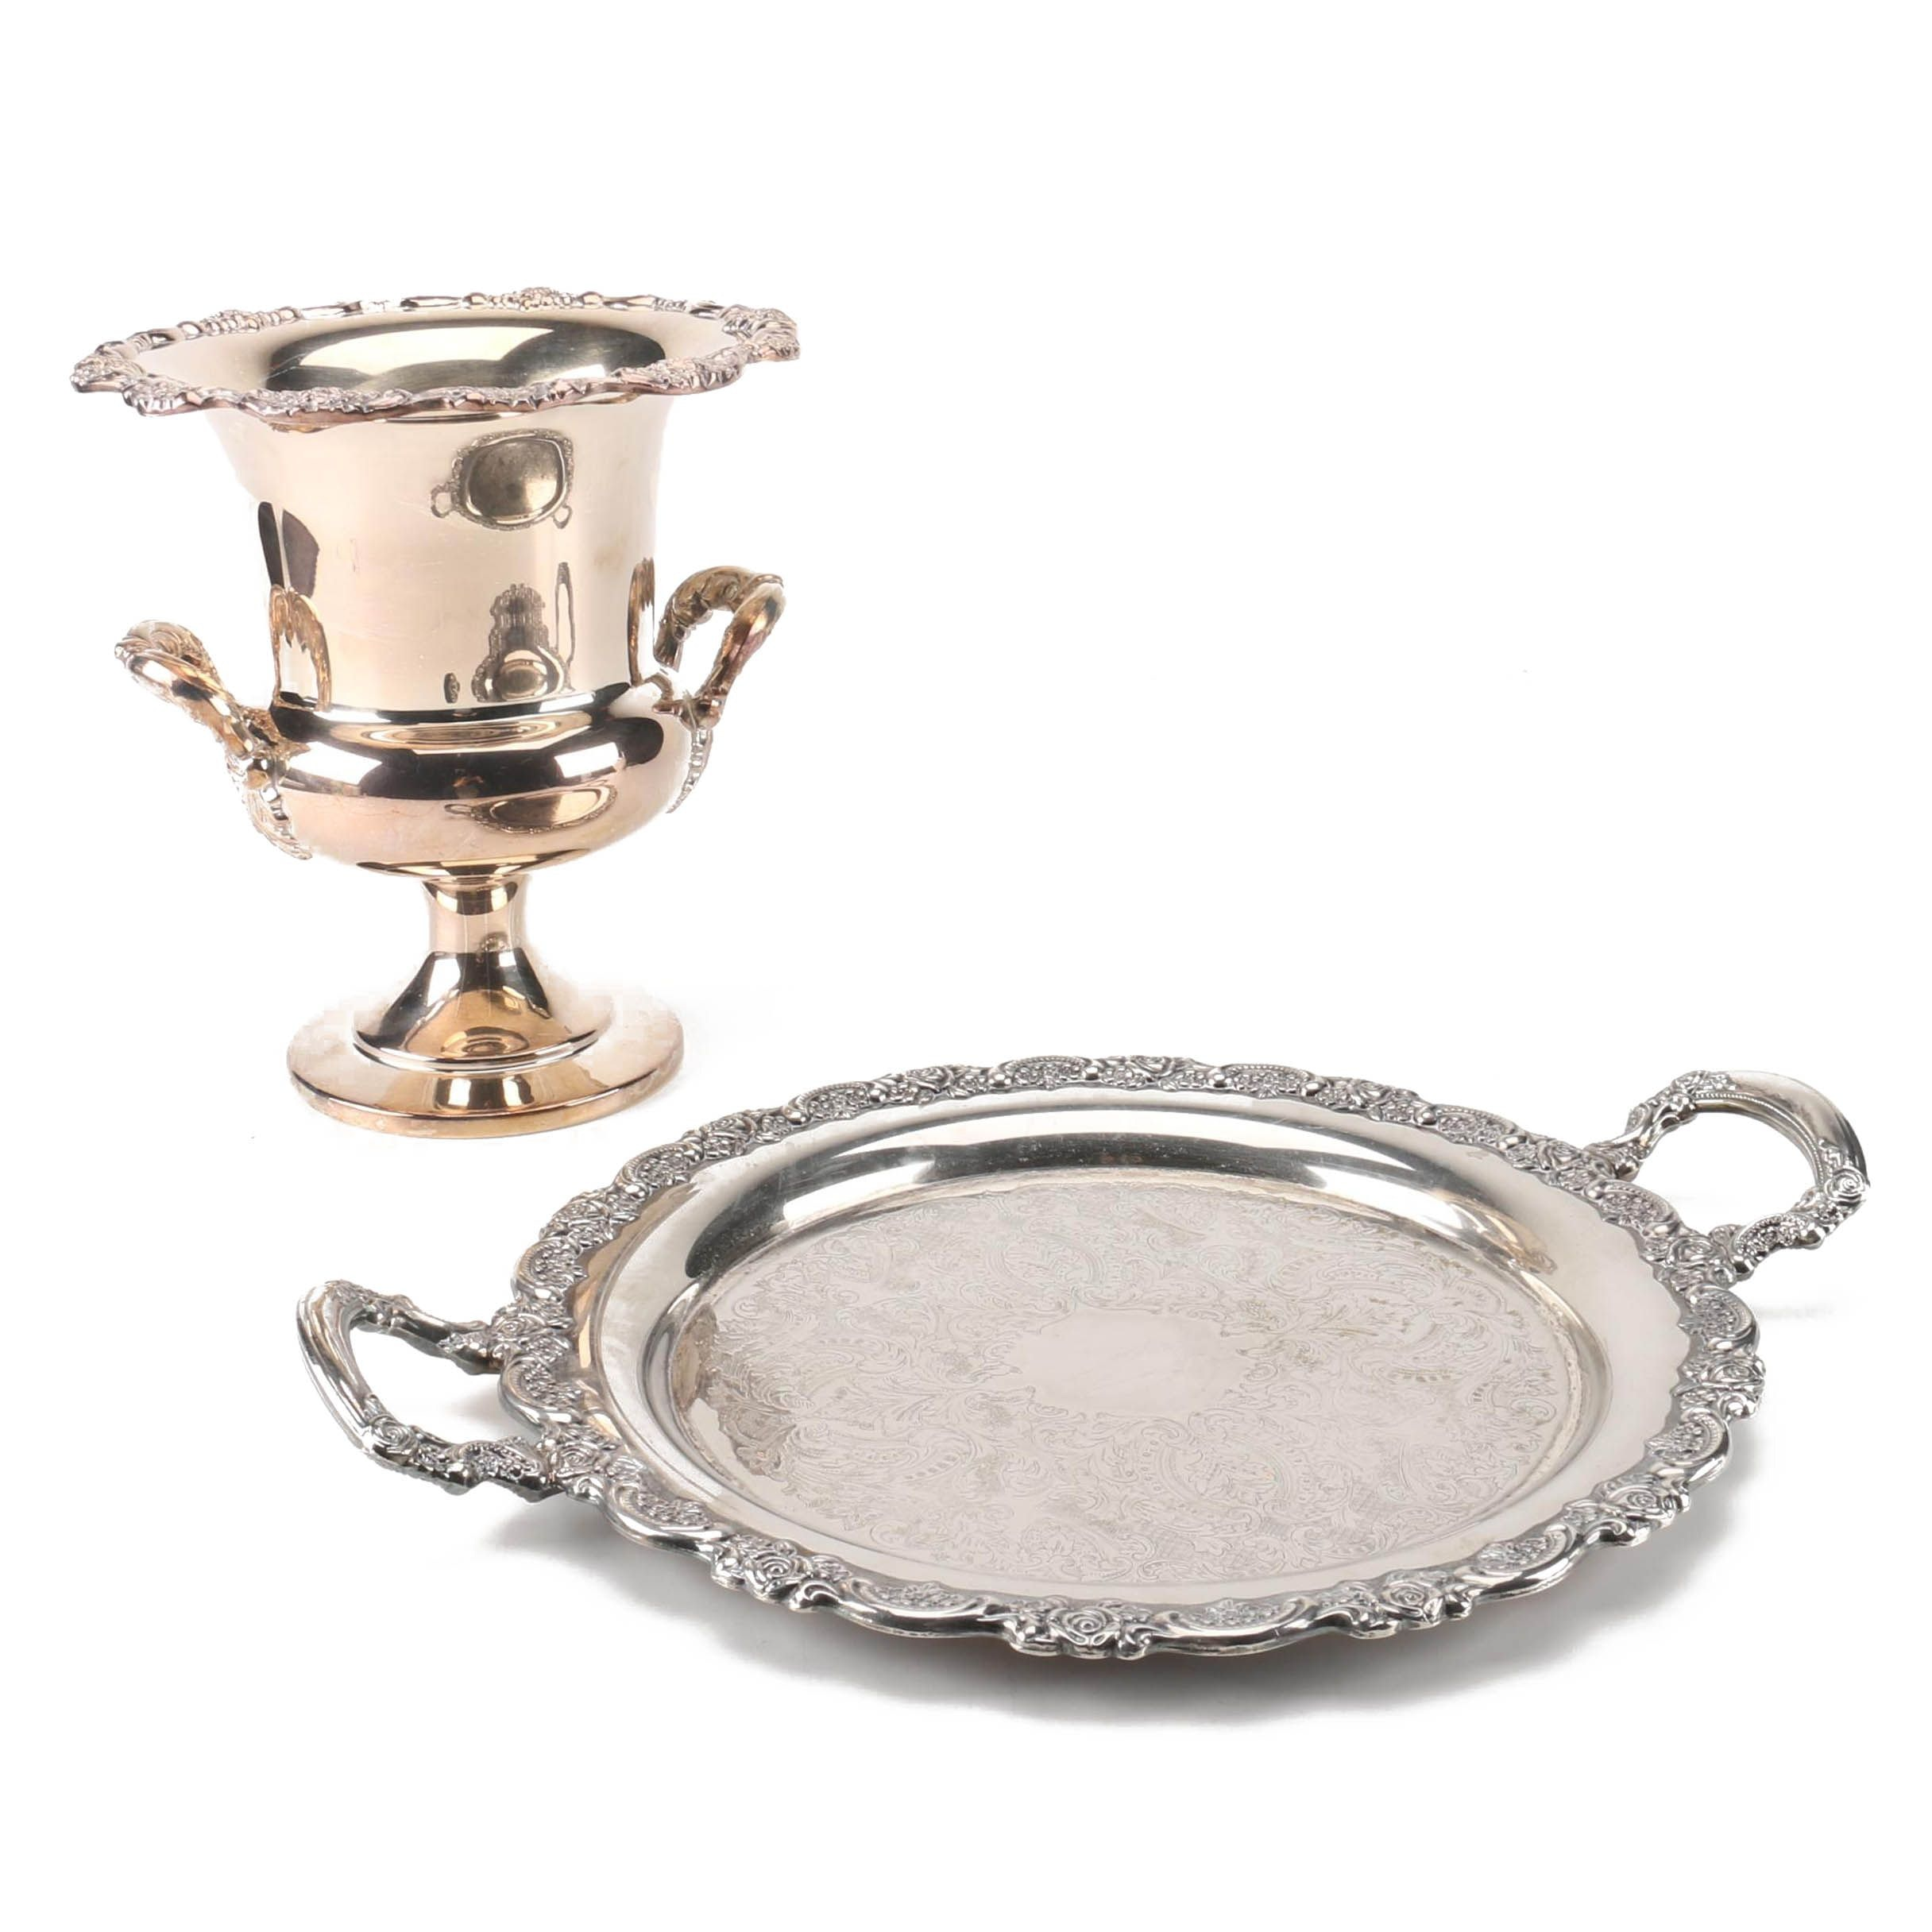 Oneida Silver Plate Handled Serving Tray and Champagne Chiller